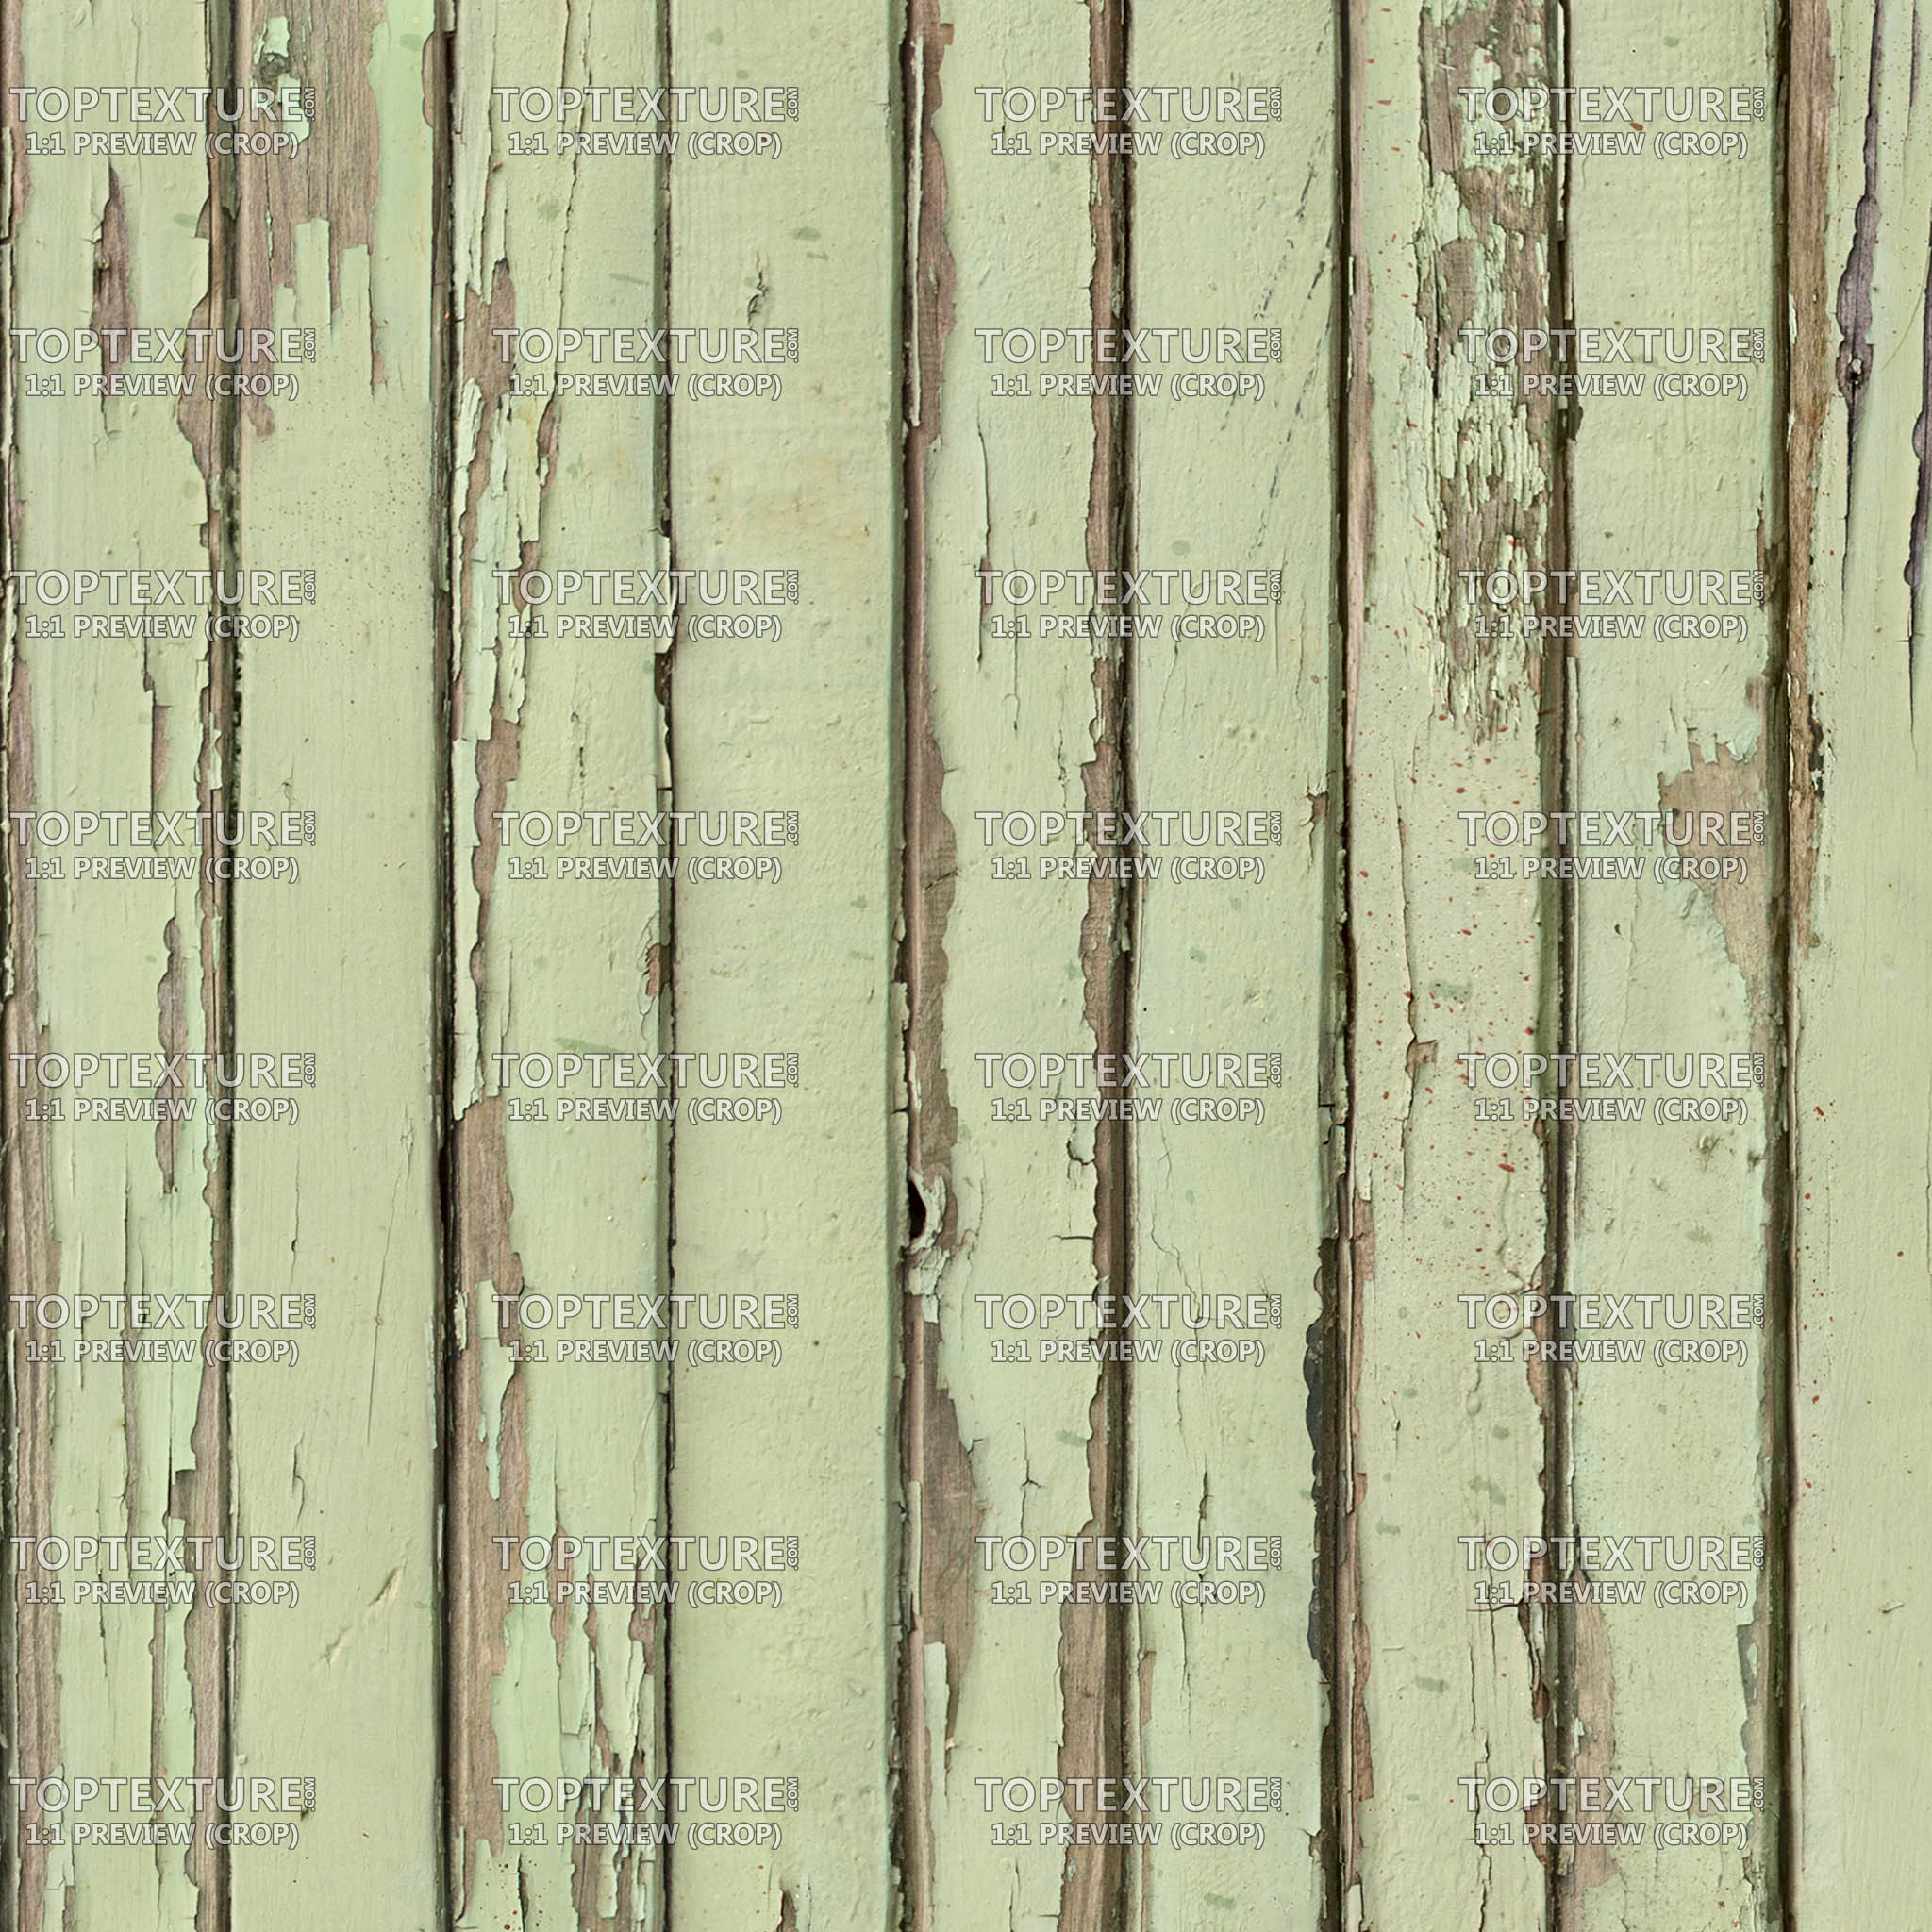 Light Green Cracked Wood Planks - Top Texture